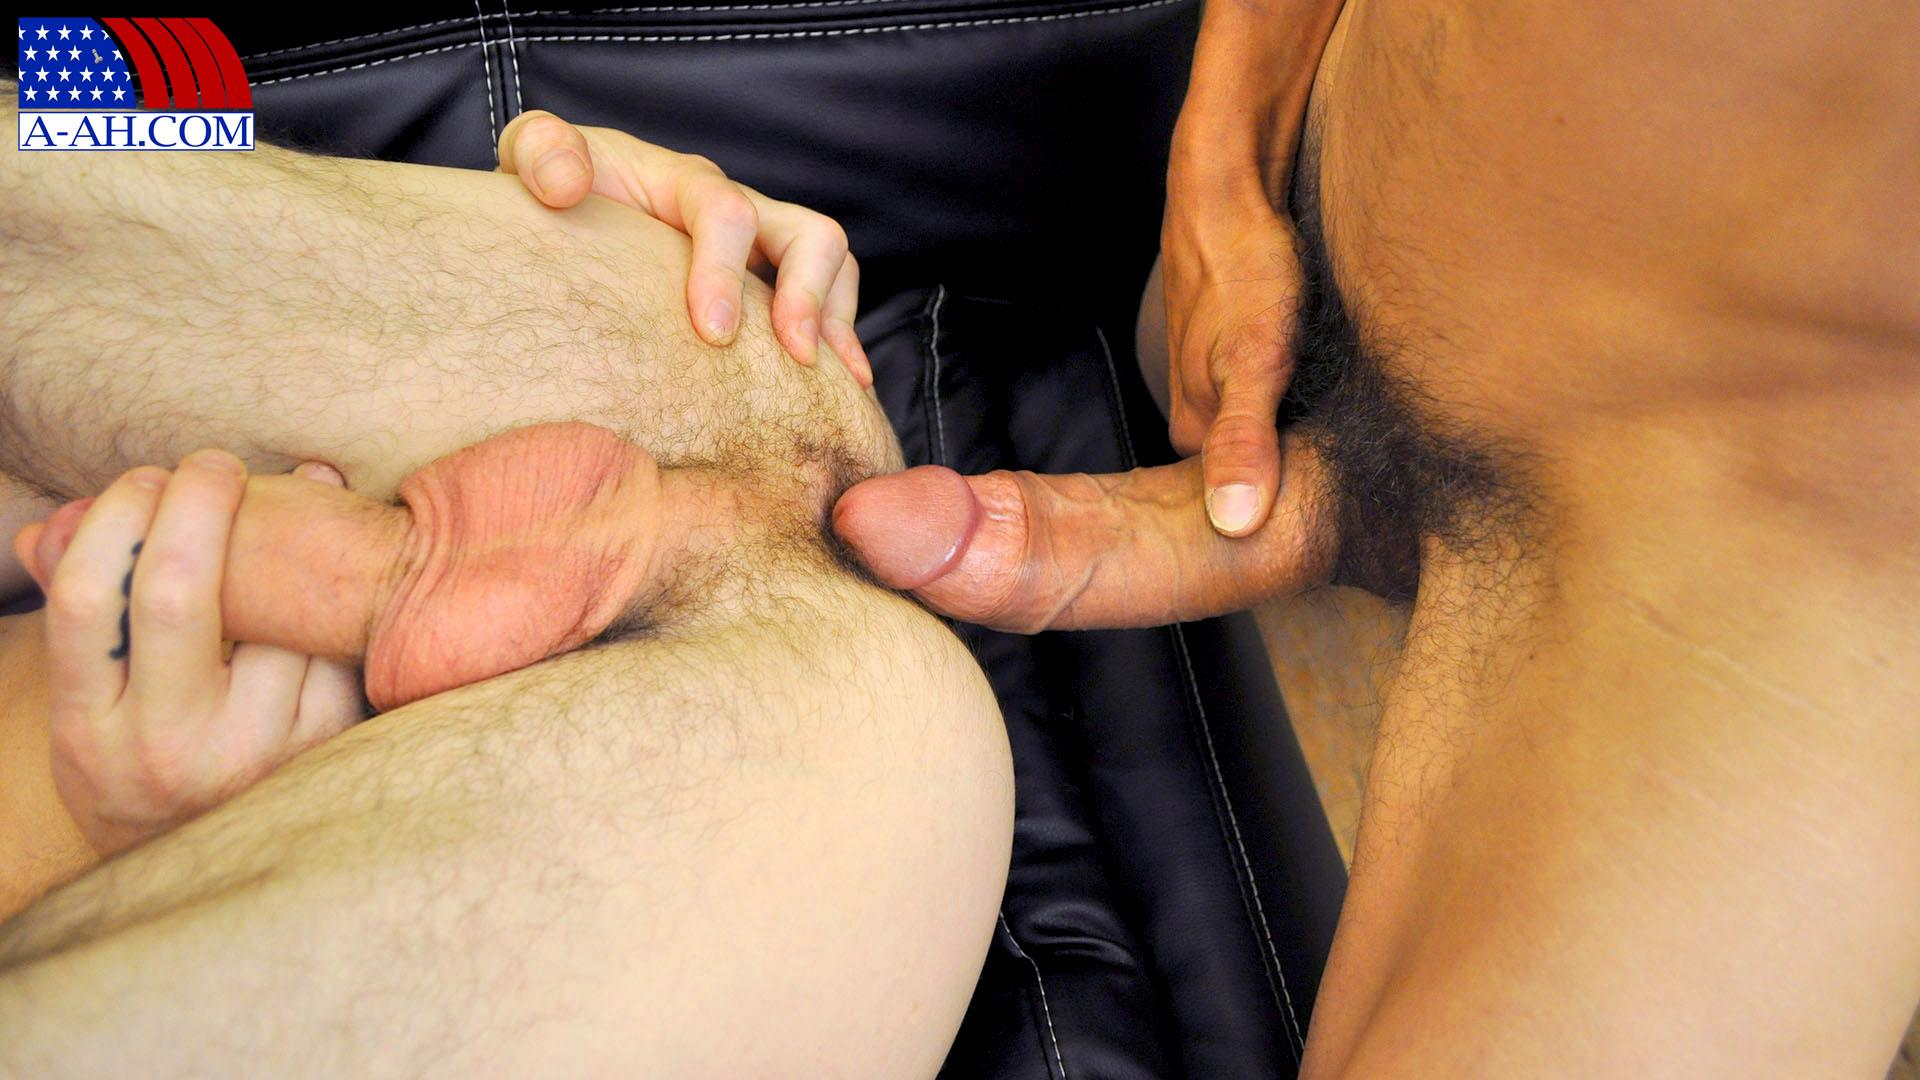 All American Heroes Navy Petty Officer Eddy fucking Army Sergeant Miles Big Uncut Cock Amateur Gay Porn 03 Navy Petty Officer Fucks A Muscle Army Sergeant